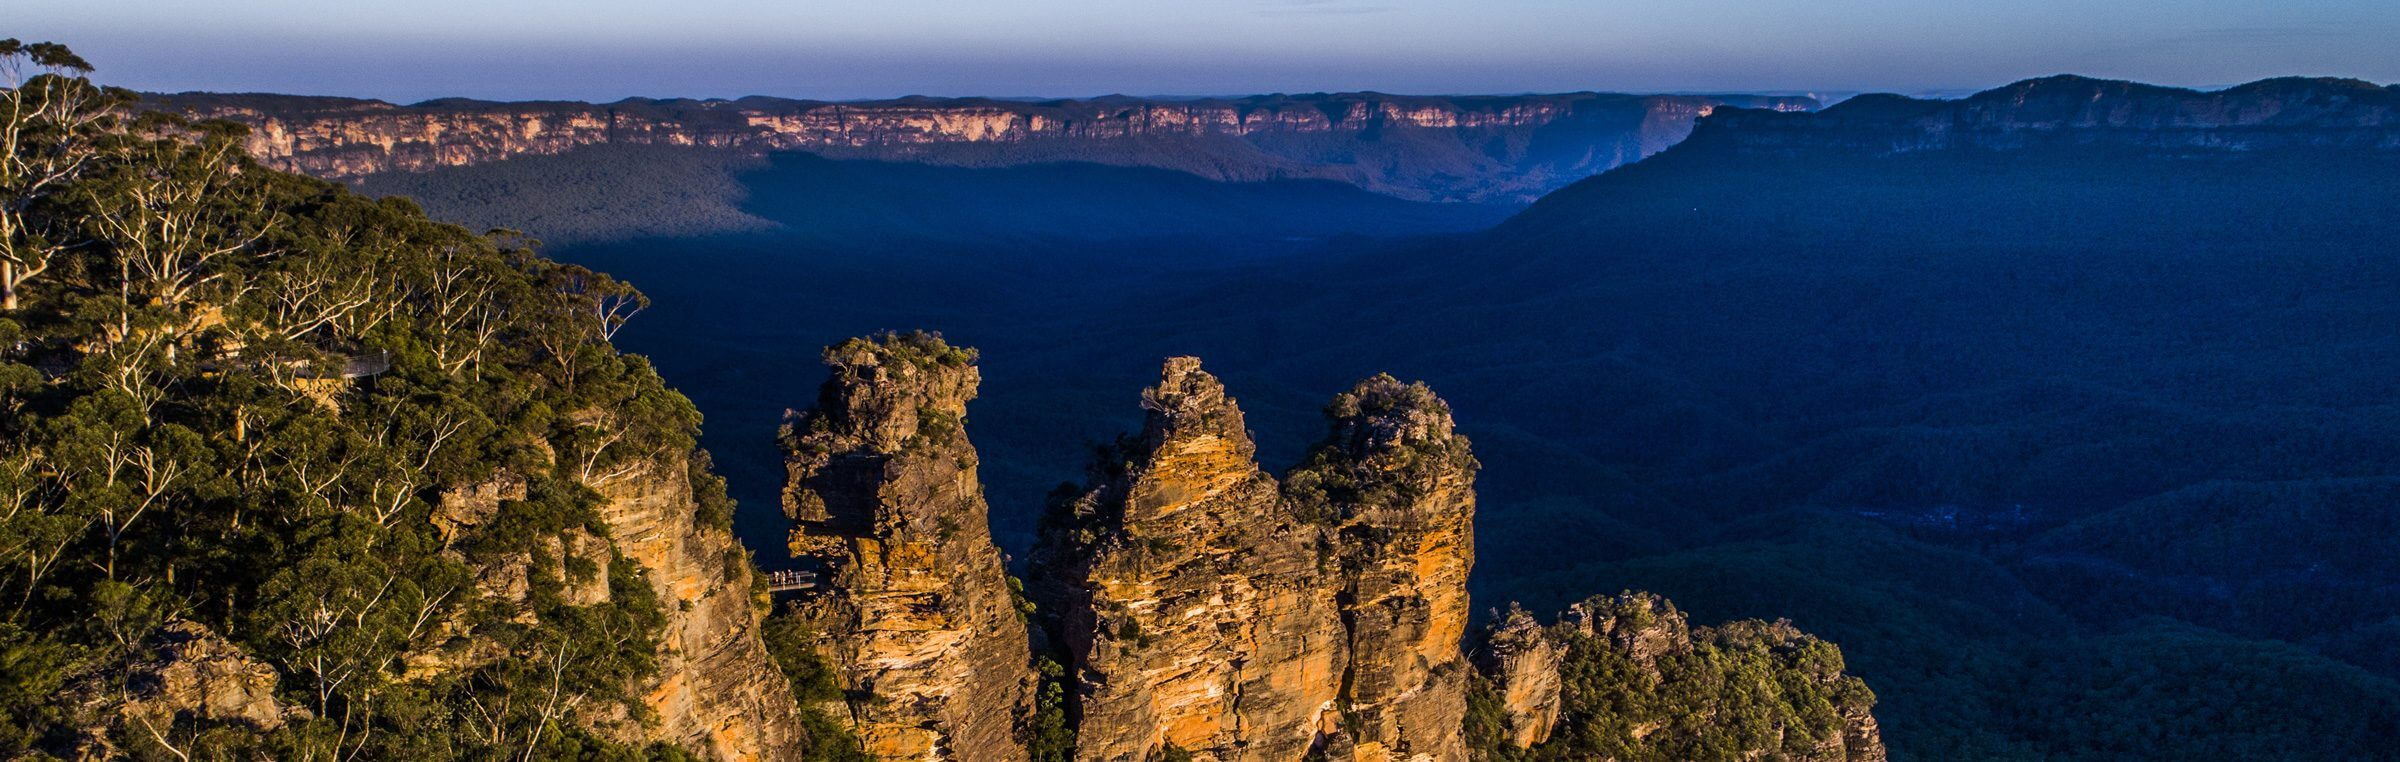 Popular private tour from Sydney to Blue Mountains